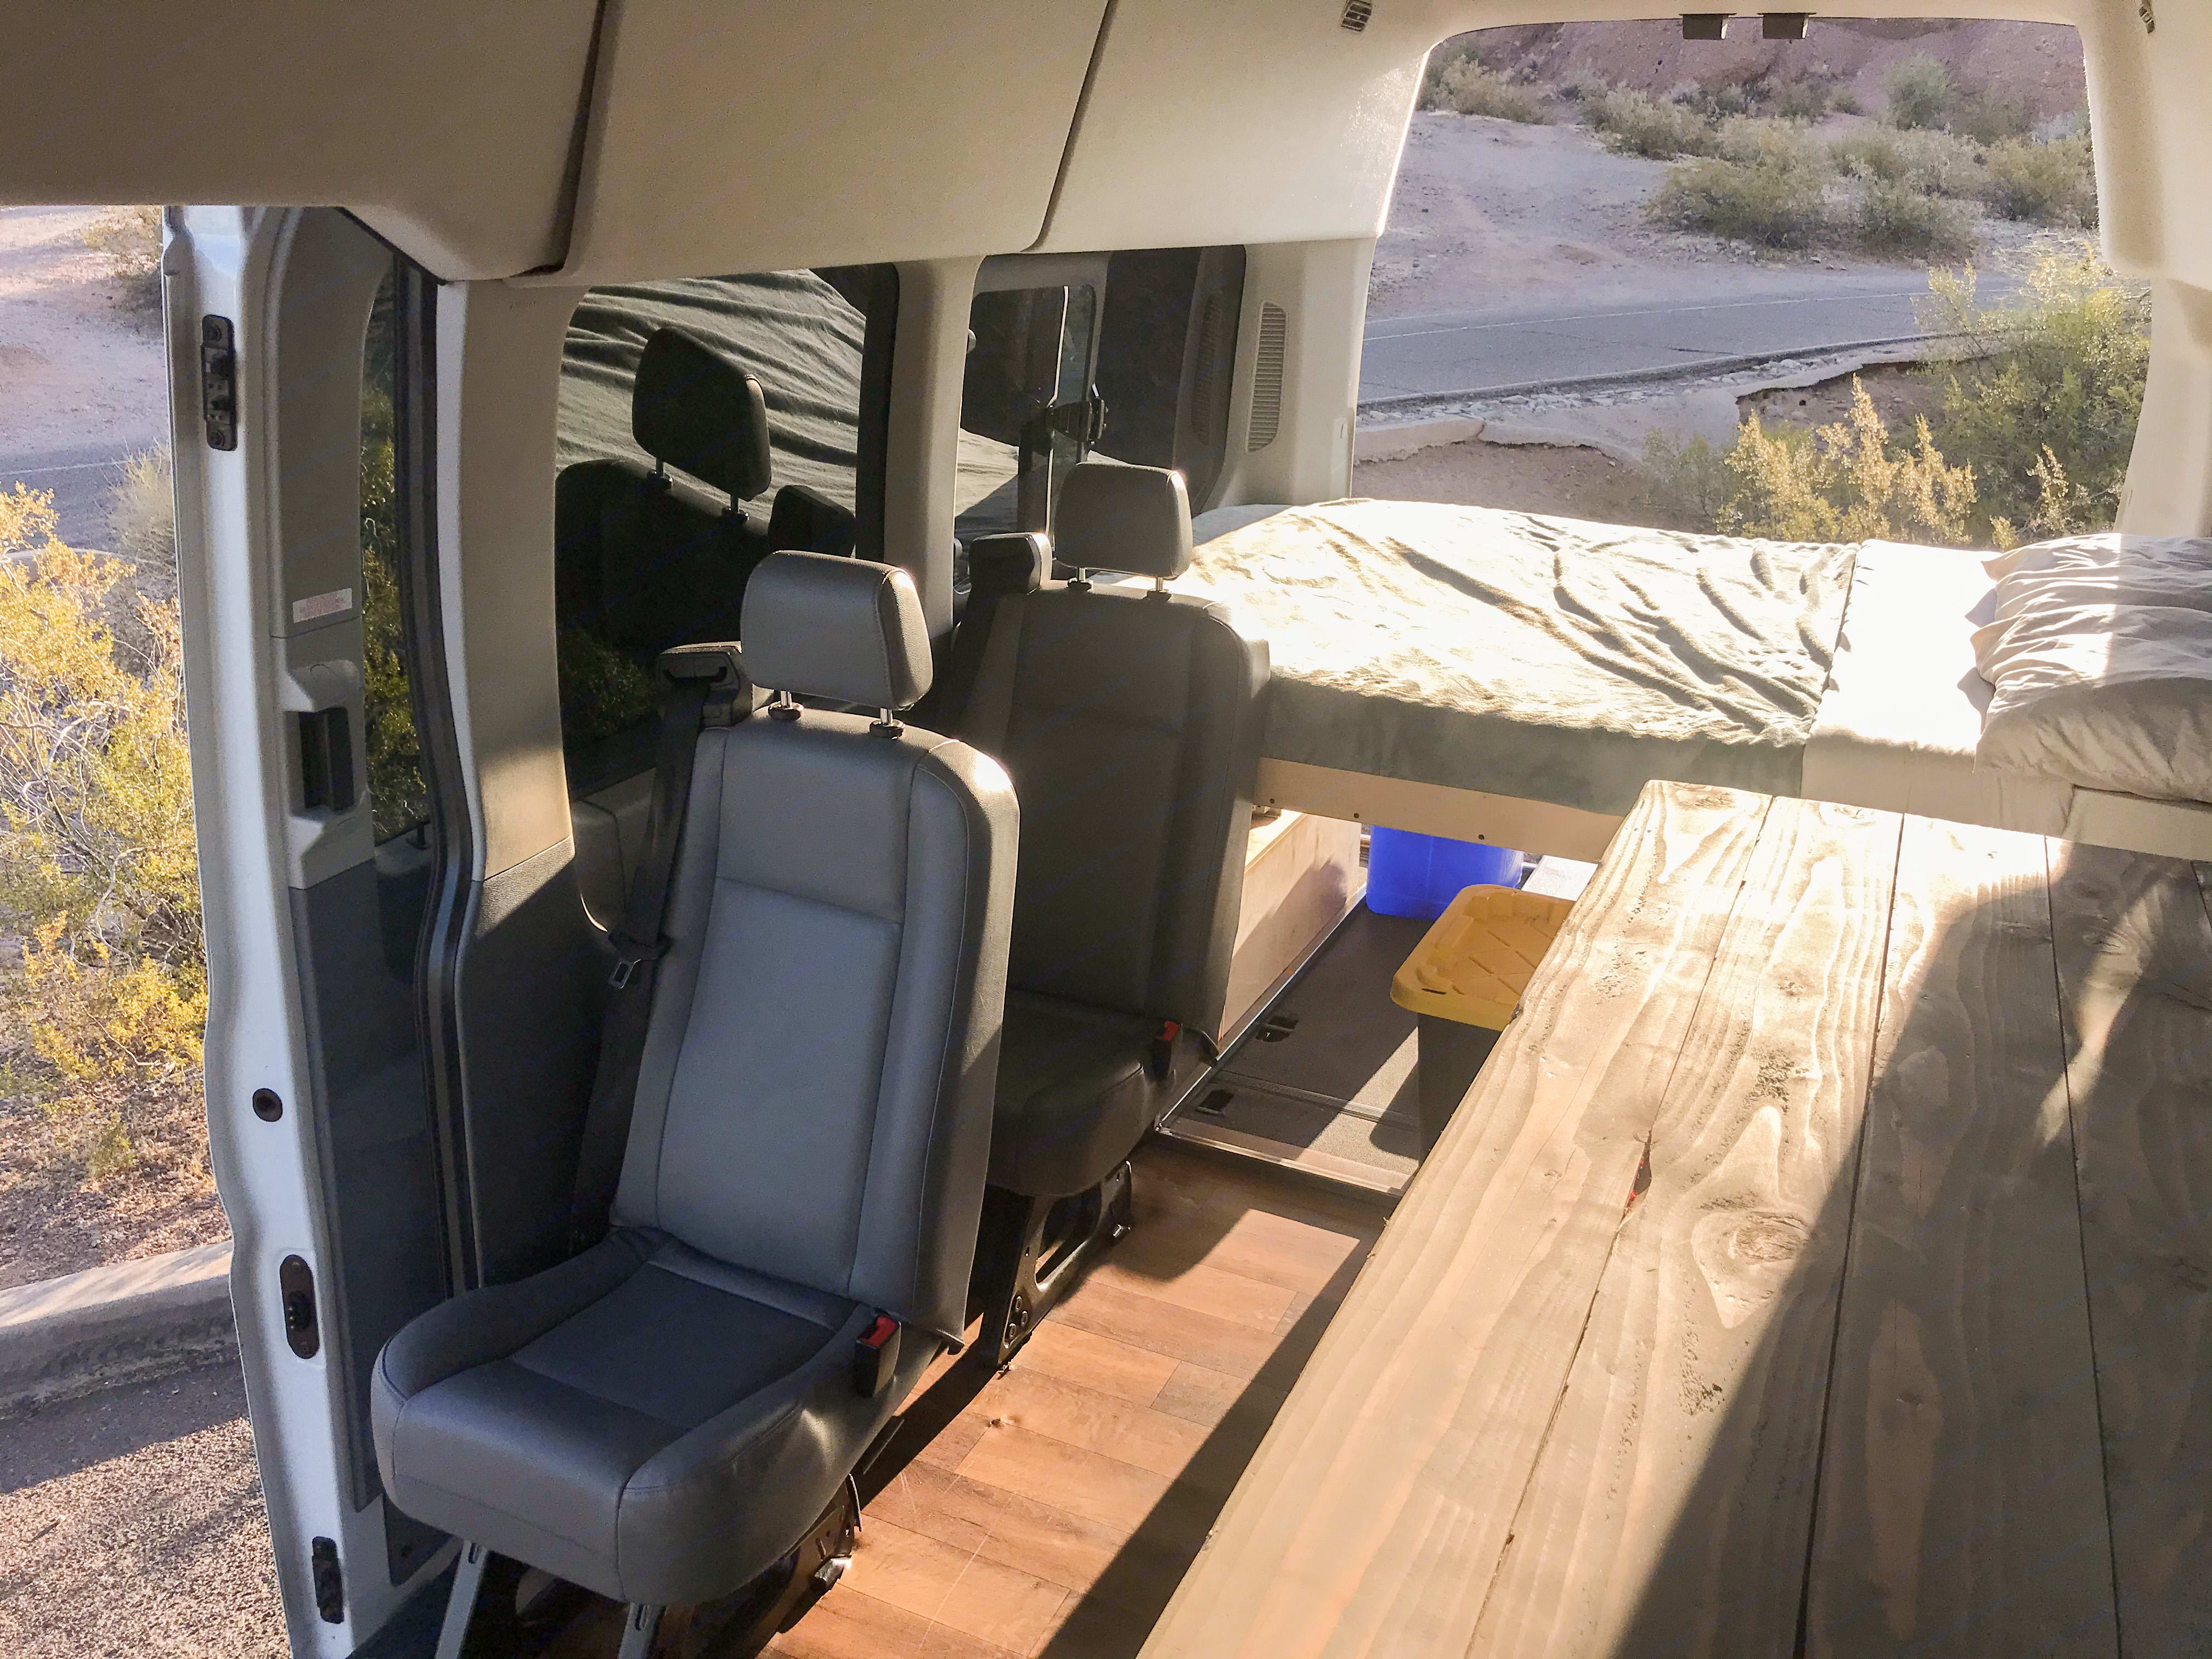 Seats 4 with 3 point seat belts for all. Ford Transit 350 HD 2017